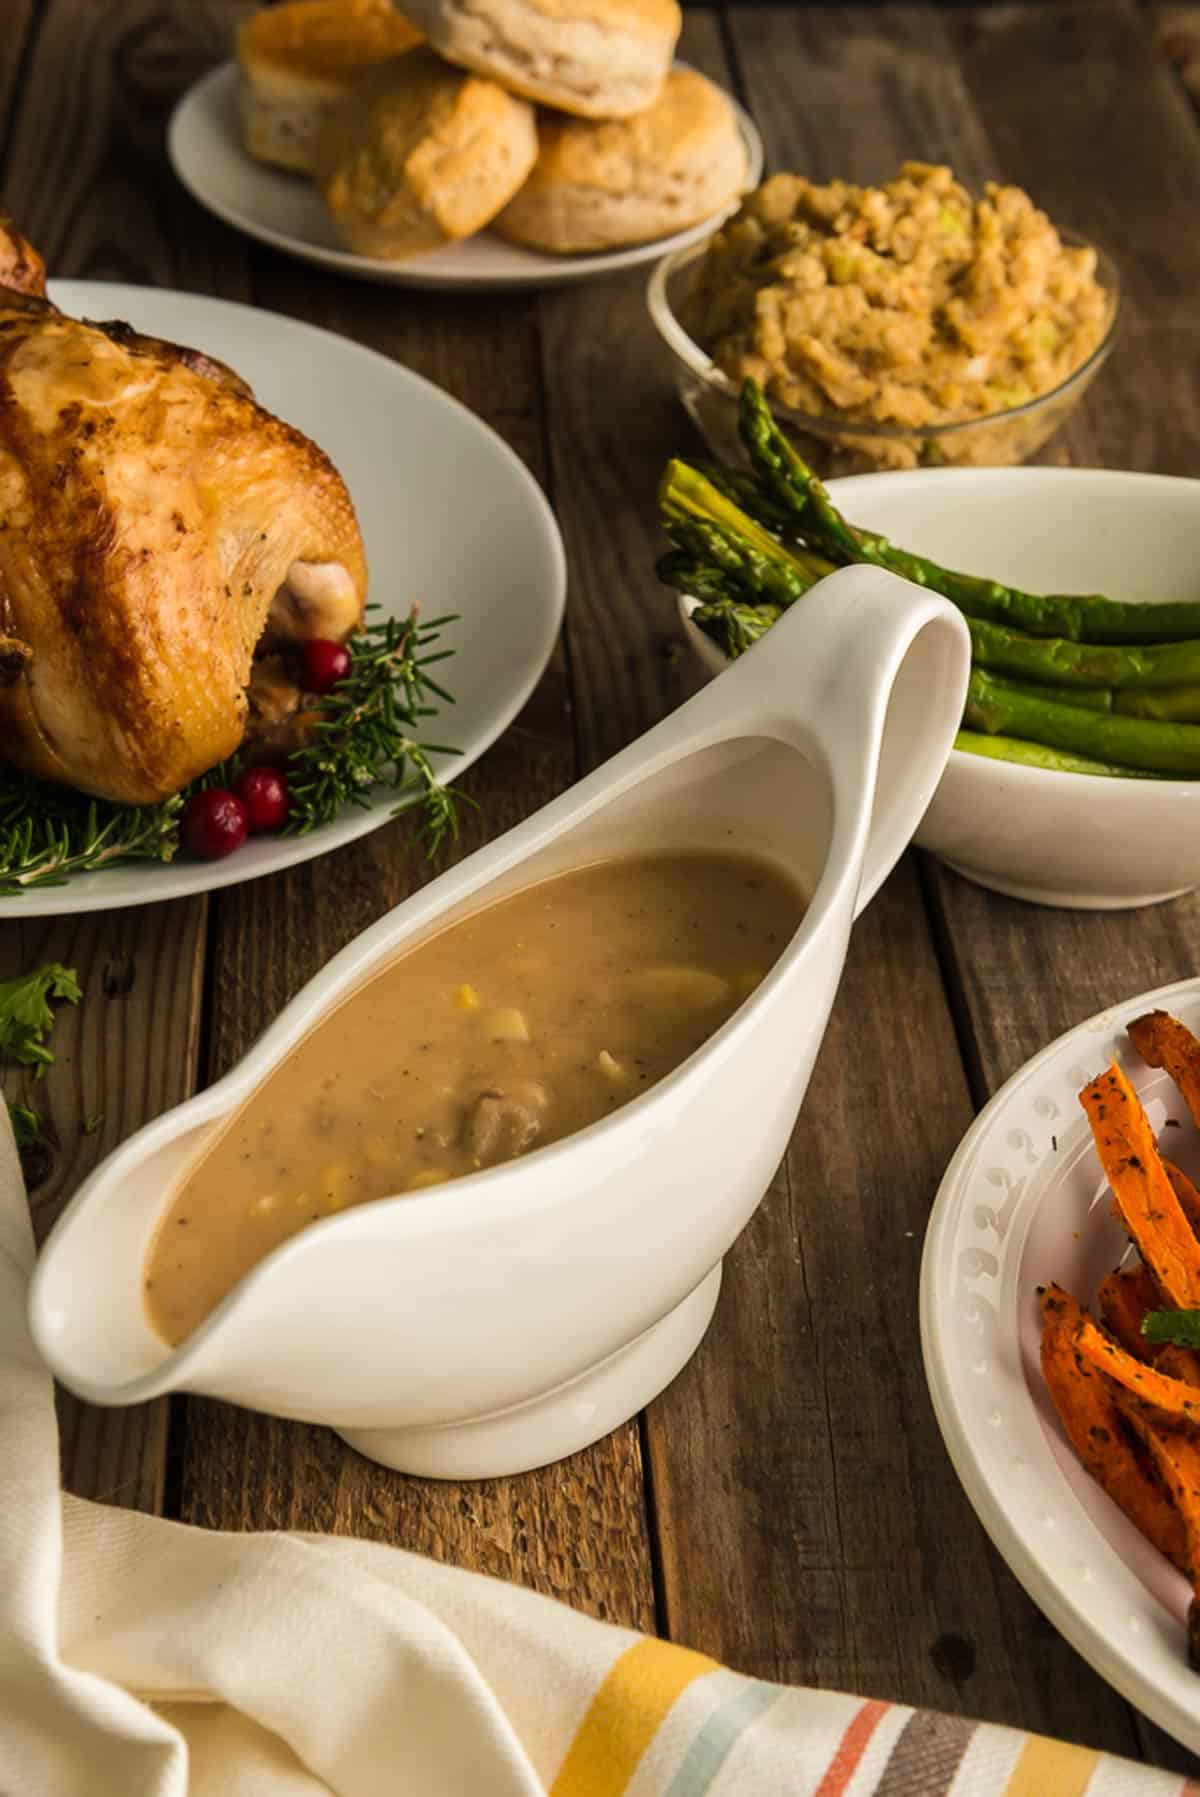 A serving dish of giblet gravy and other holiday food on a table.